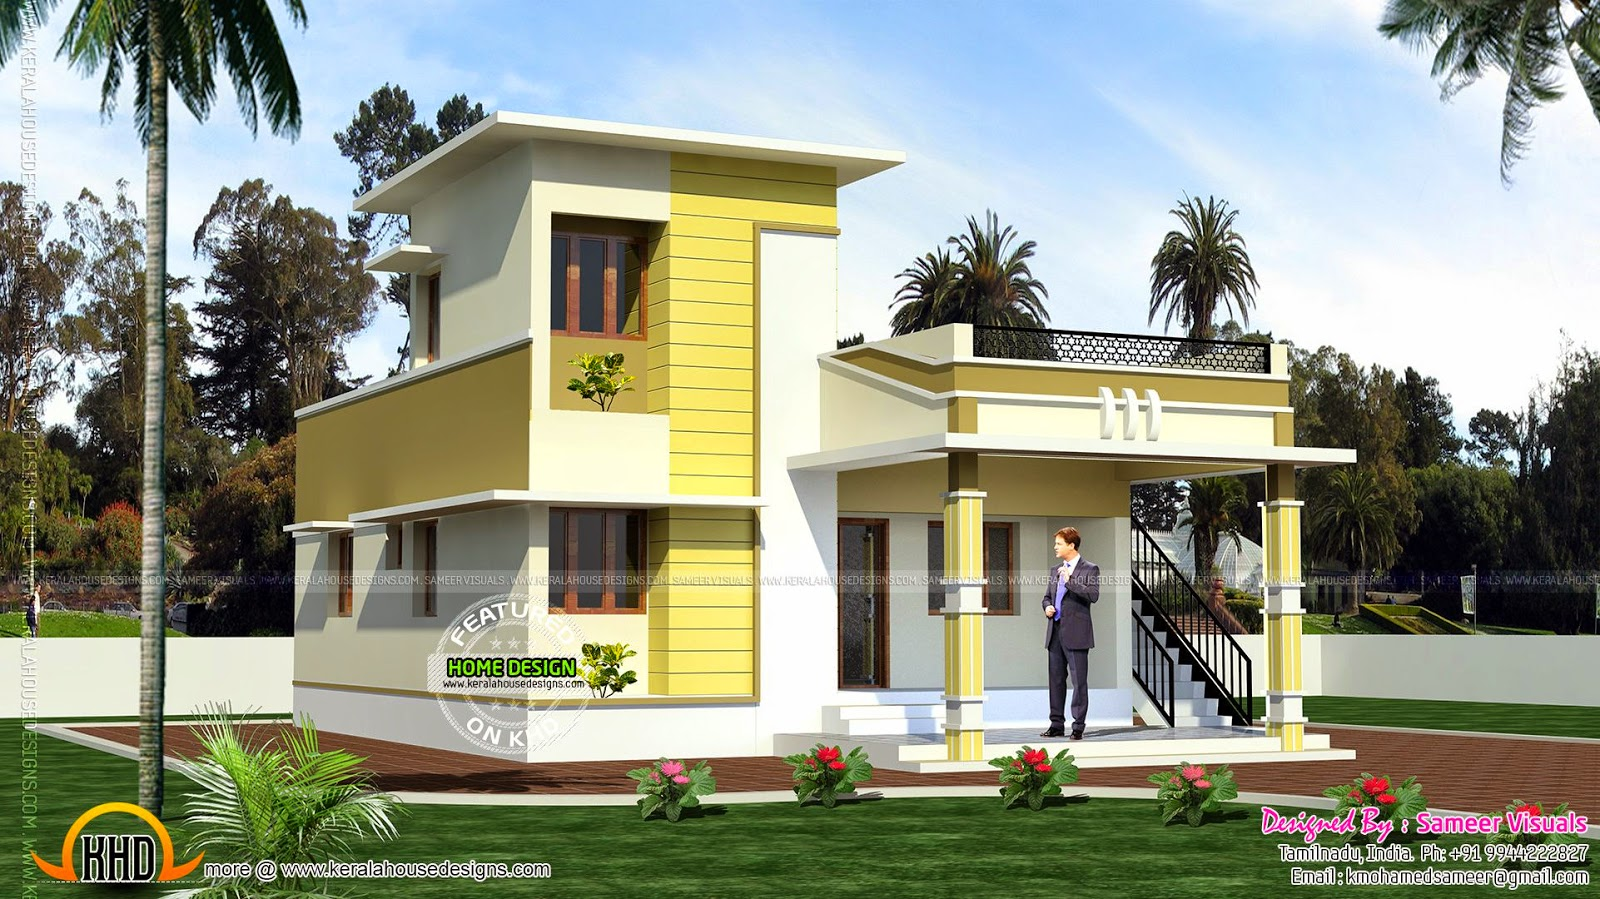 Single storied tamilnadu home kerala home design and for Tamilnadu house models